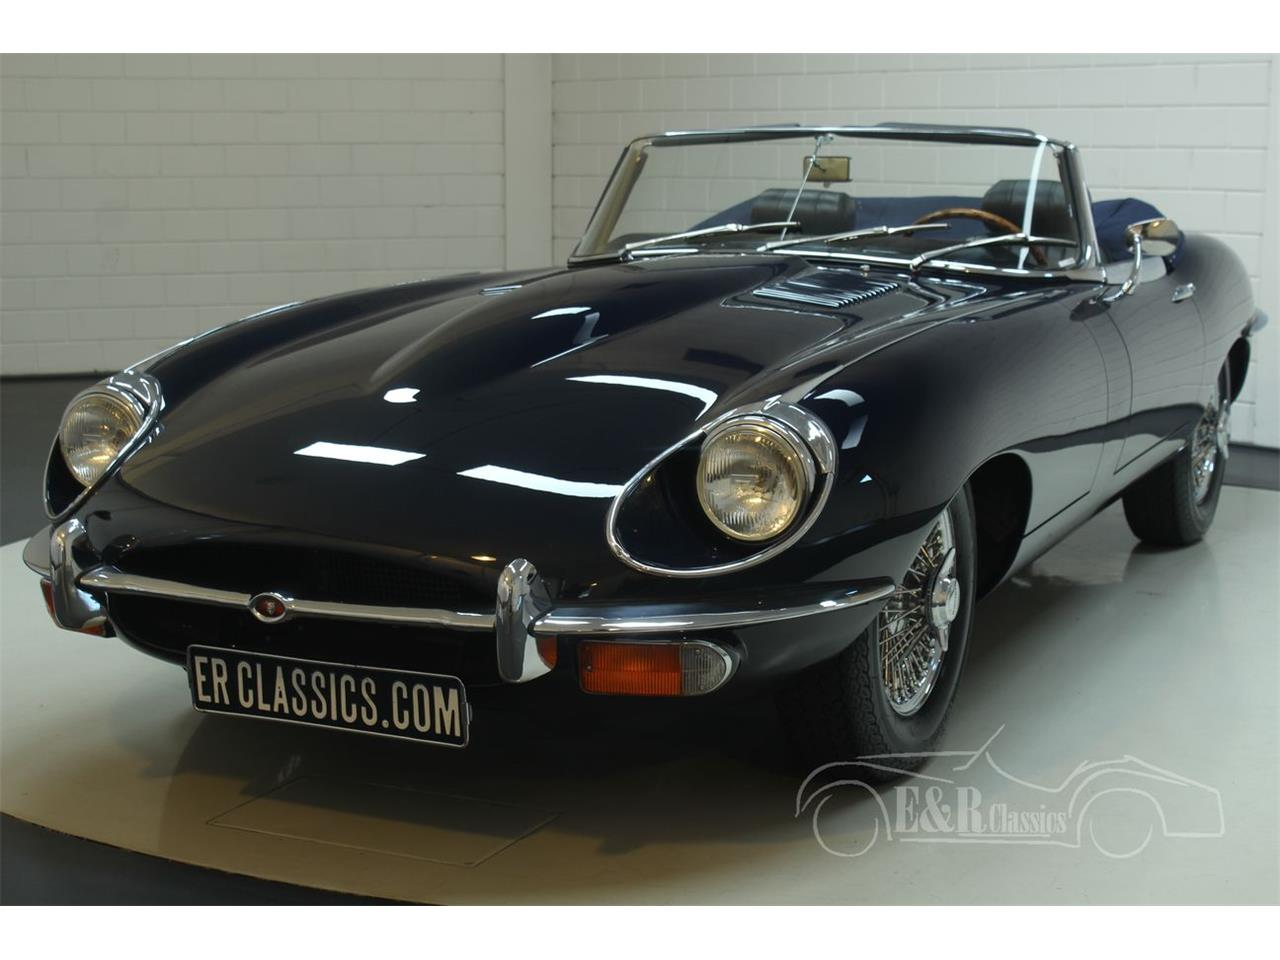 Large Picture of Classic '69 E-Type - $139,400.00 Offered by E & R Classics - Q45K